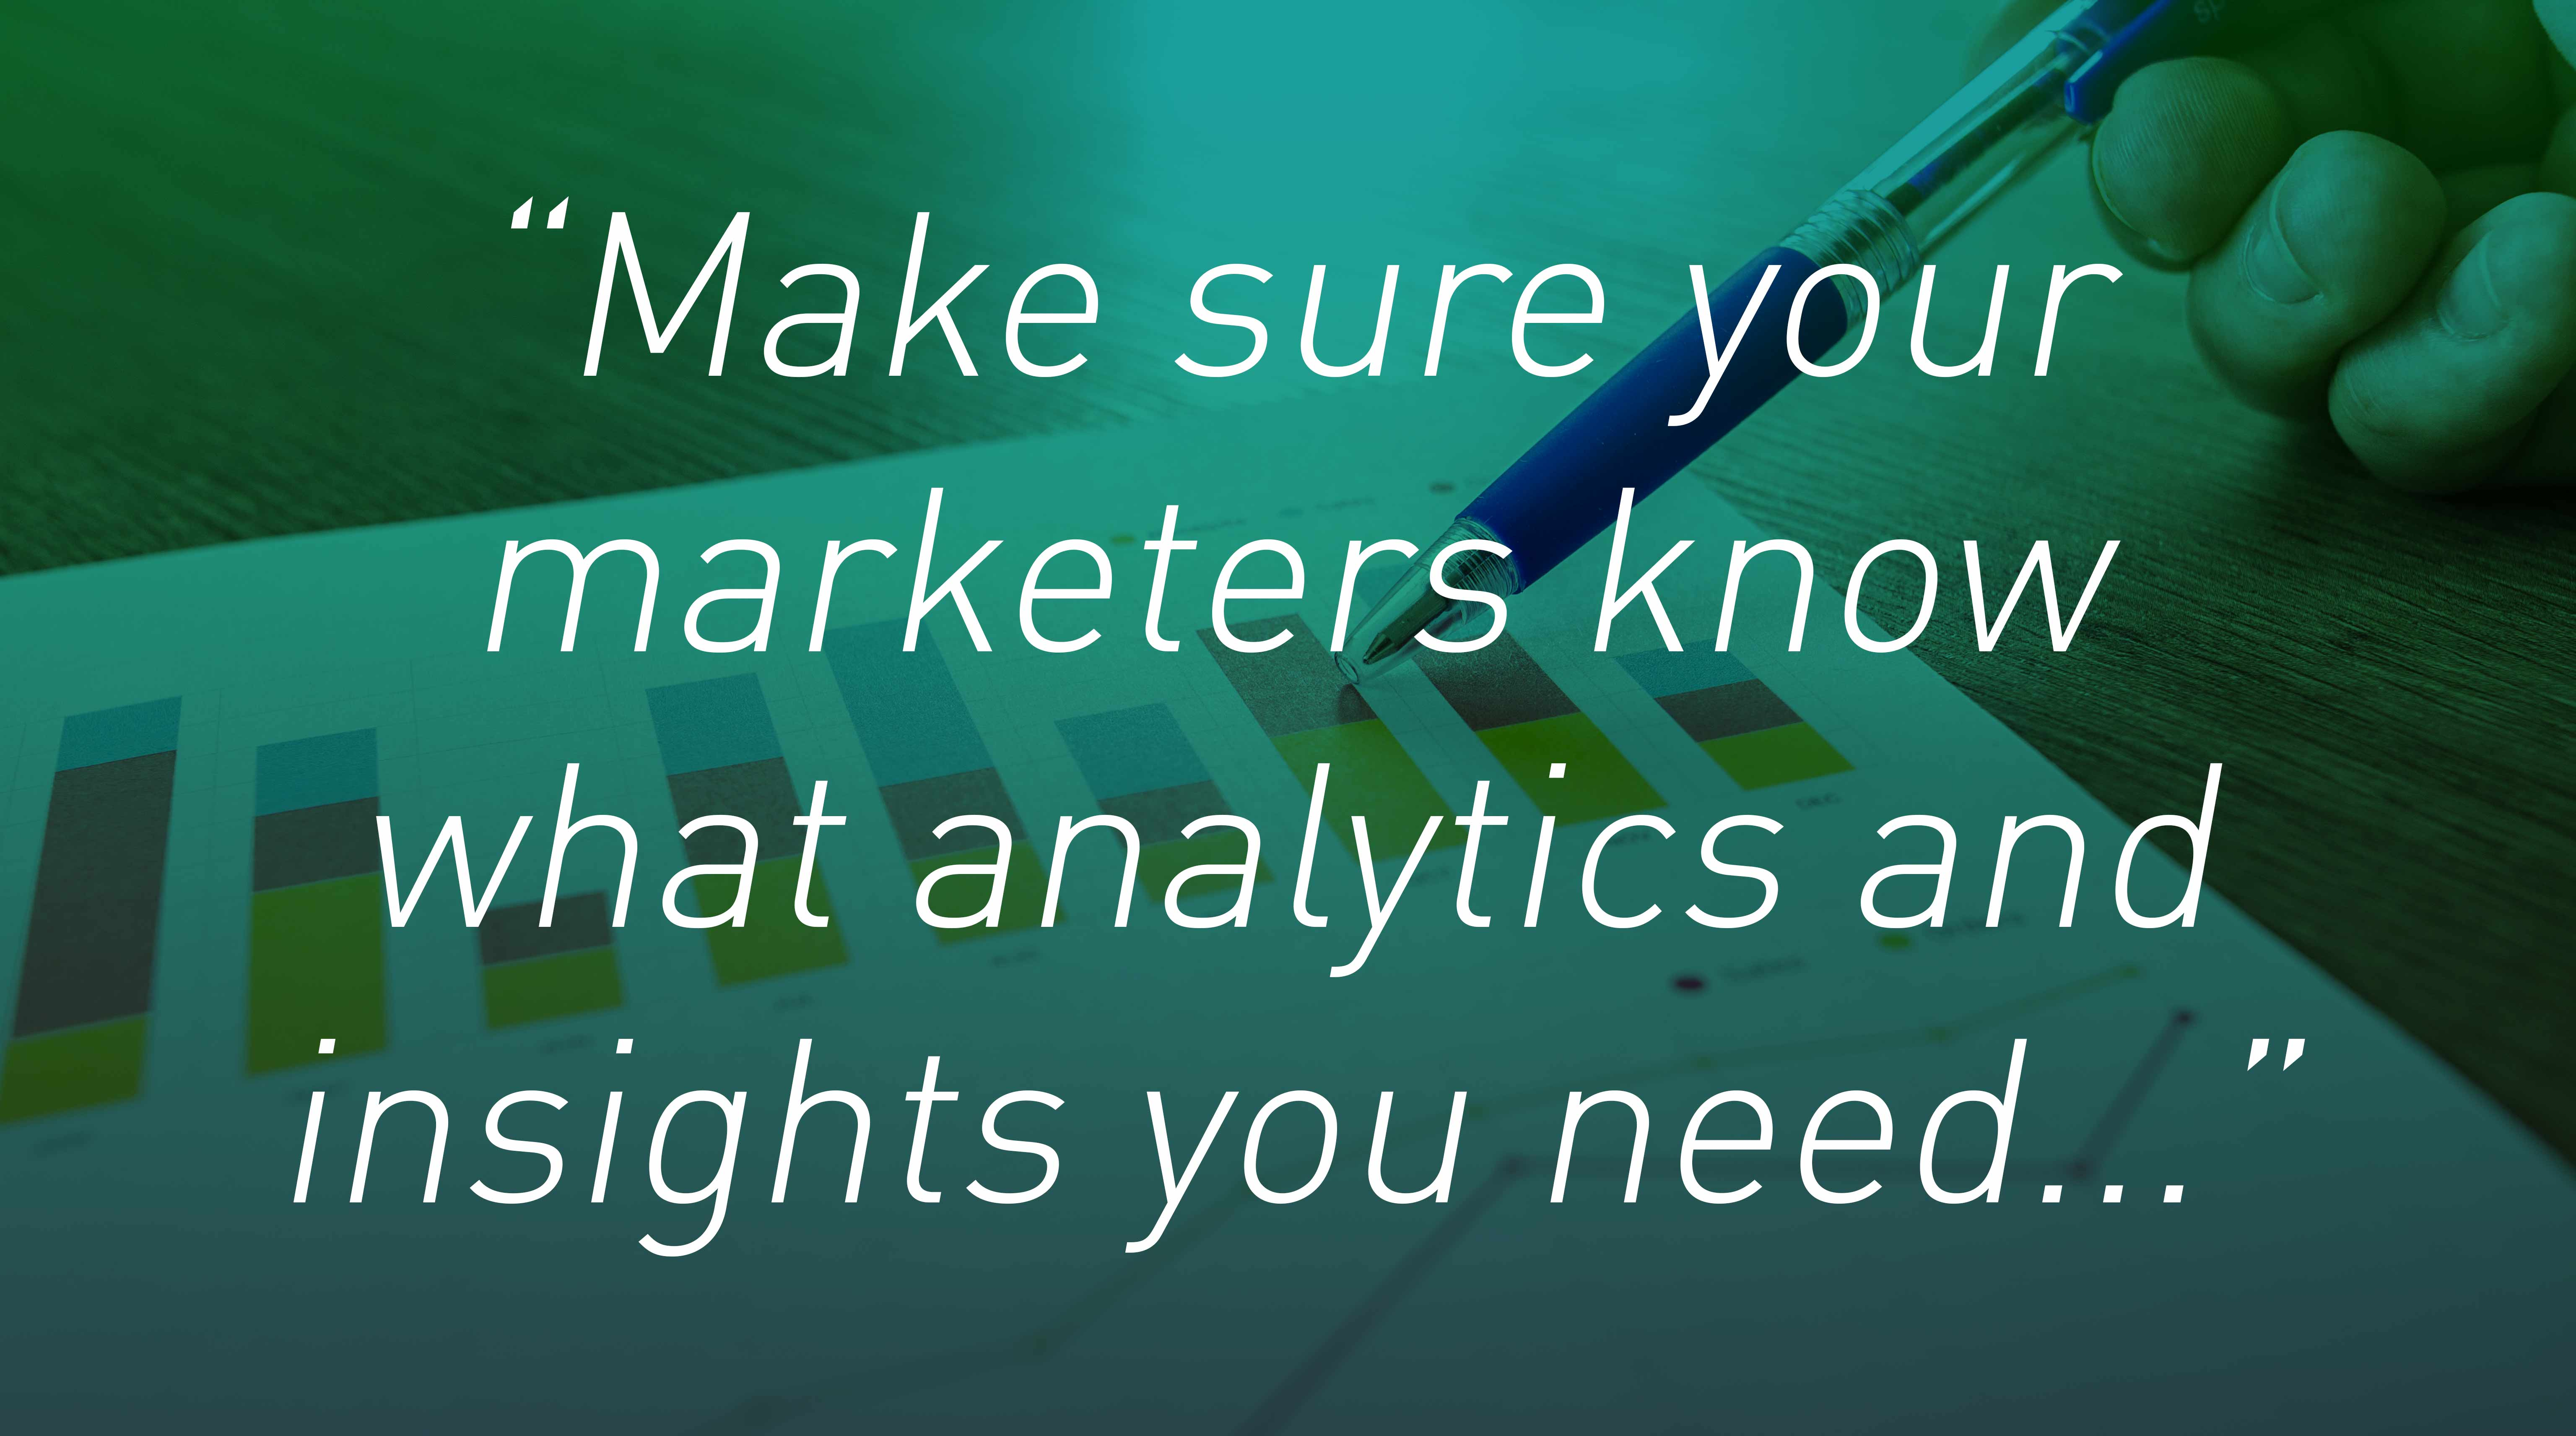 Make sure your marketers know what analytics and insights you need...